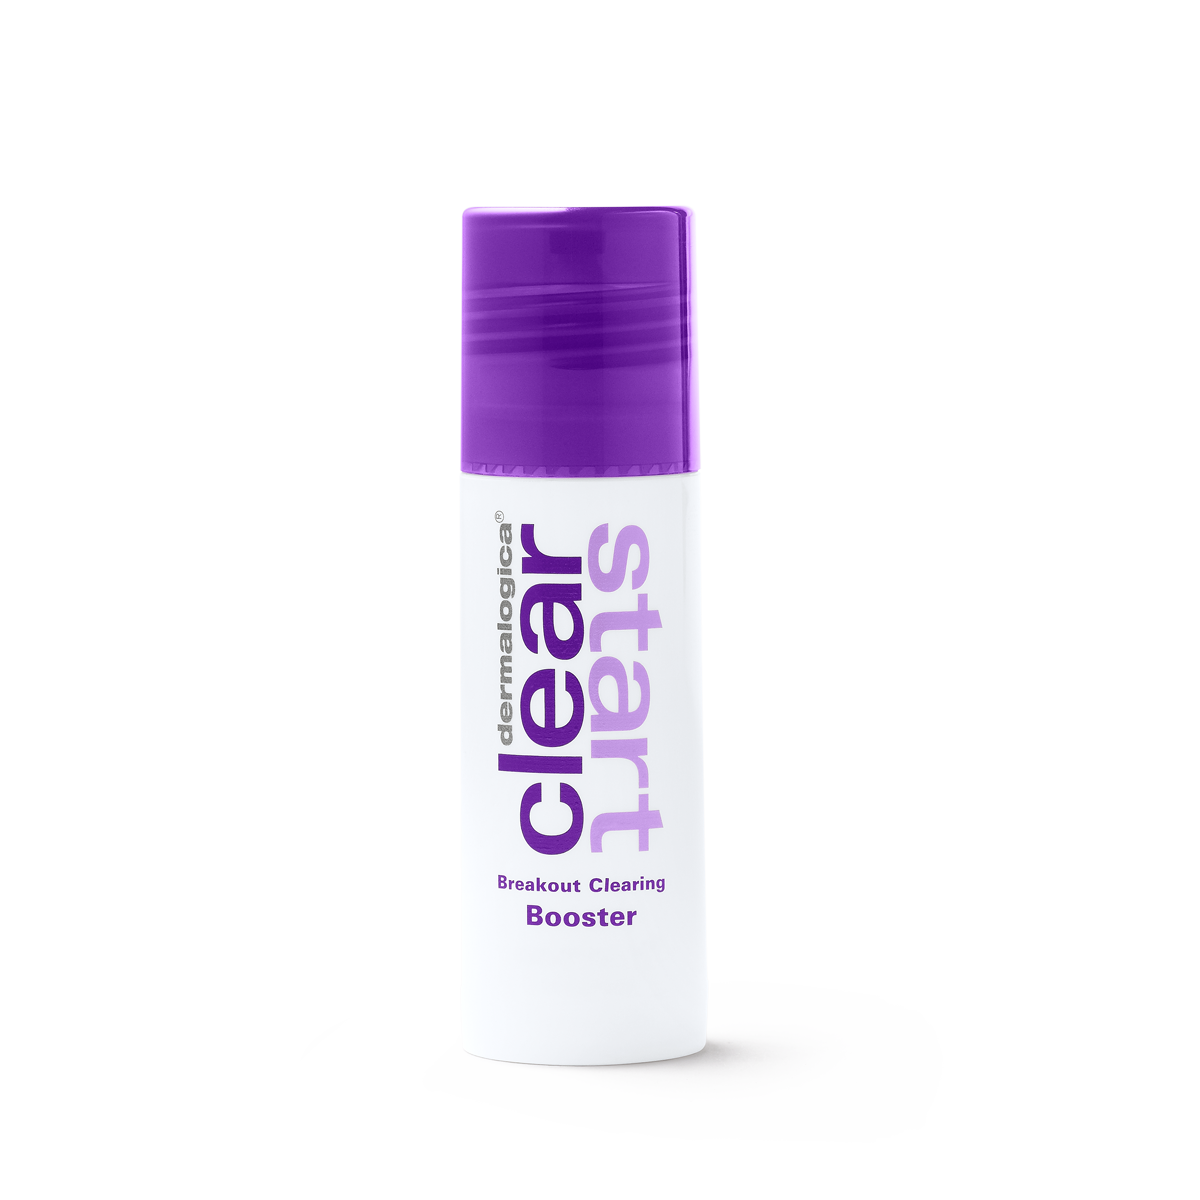 Breakout Clearing Booster - 30ml-1